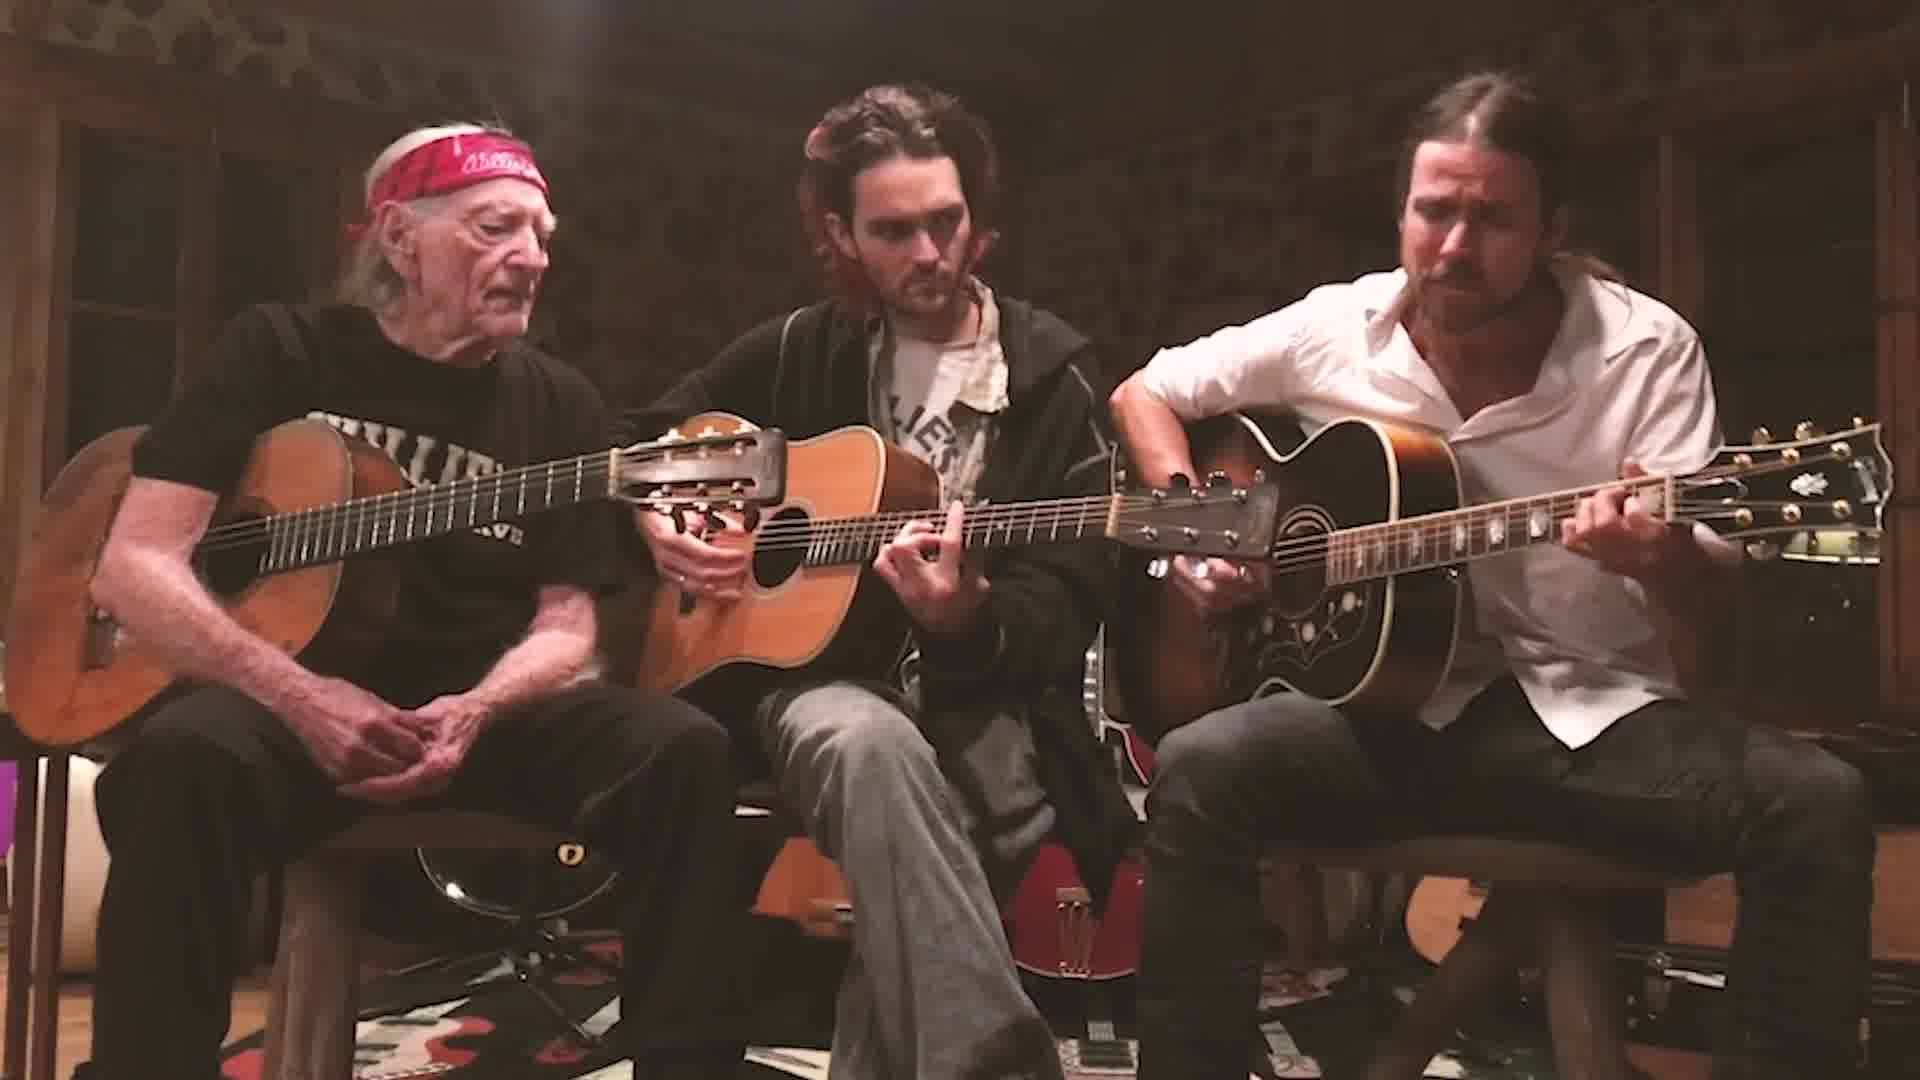 Watch Lukas Nelson, Willie Nelson & Micah Nelson - Turn Off The News And Build a Garden